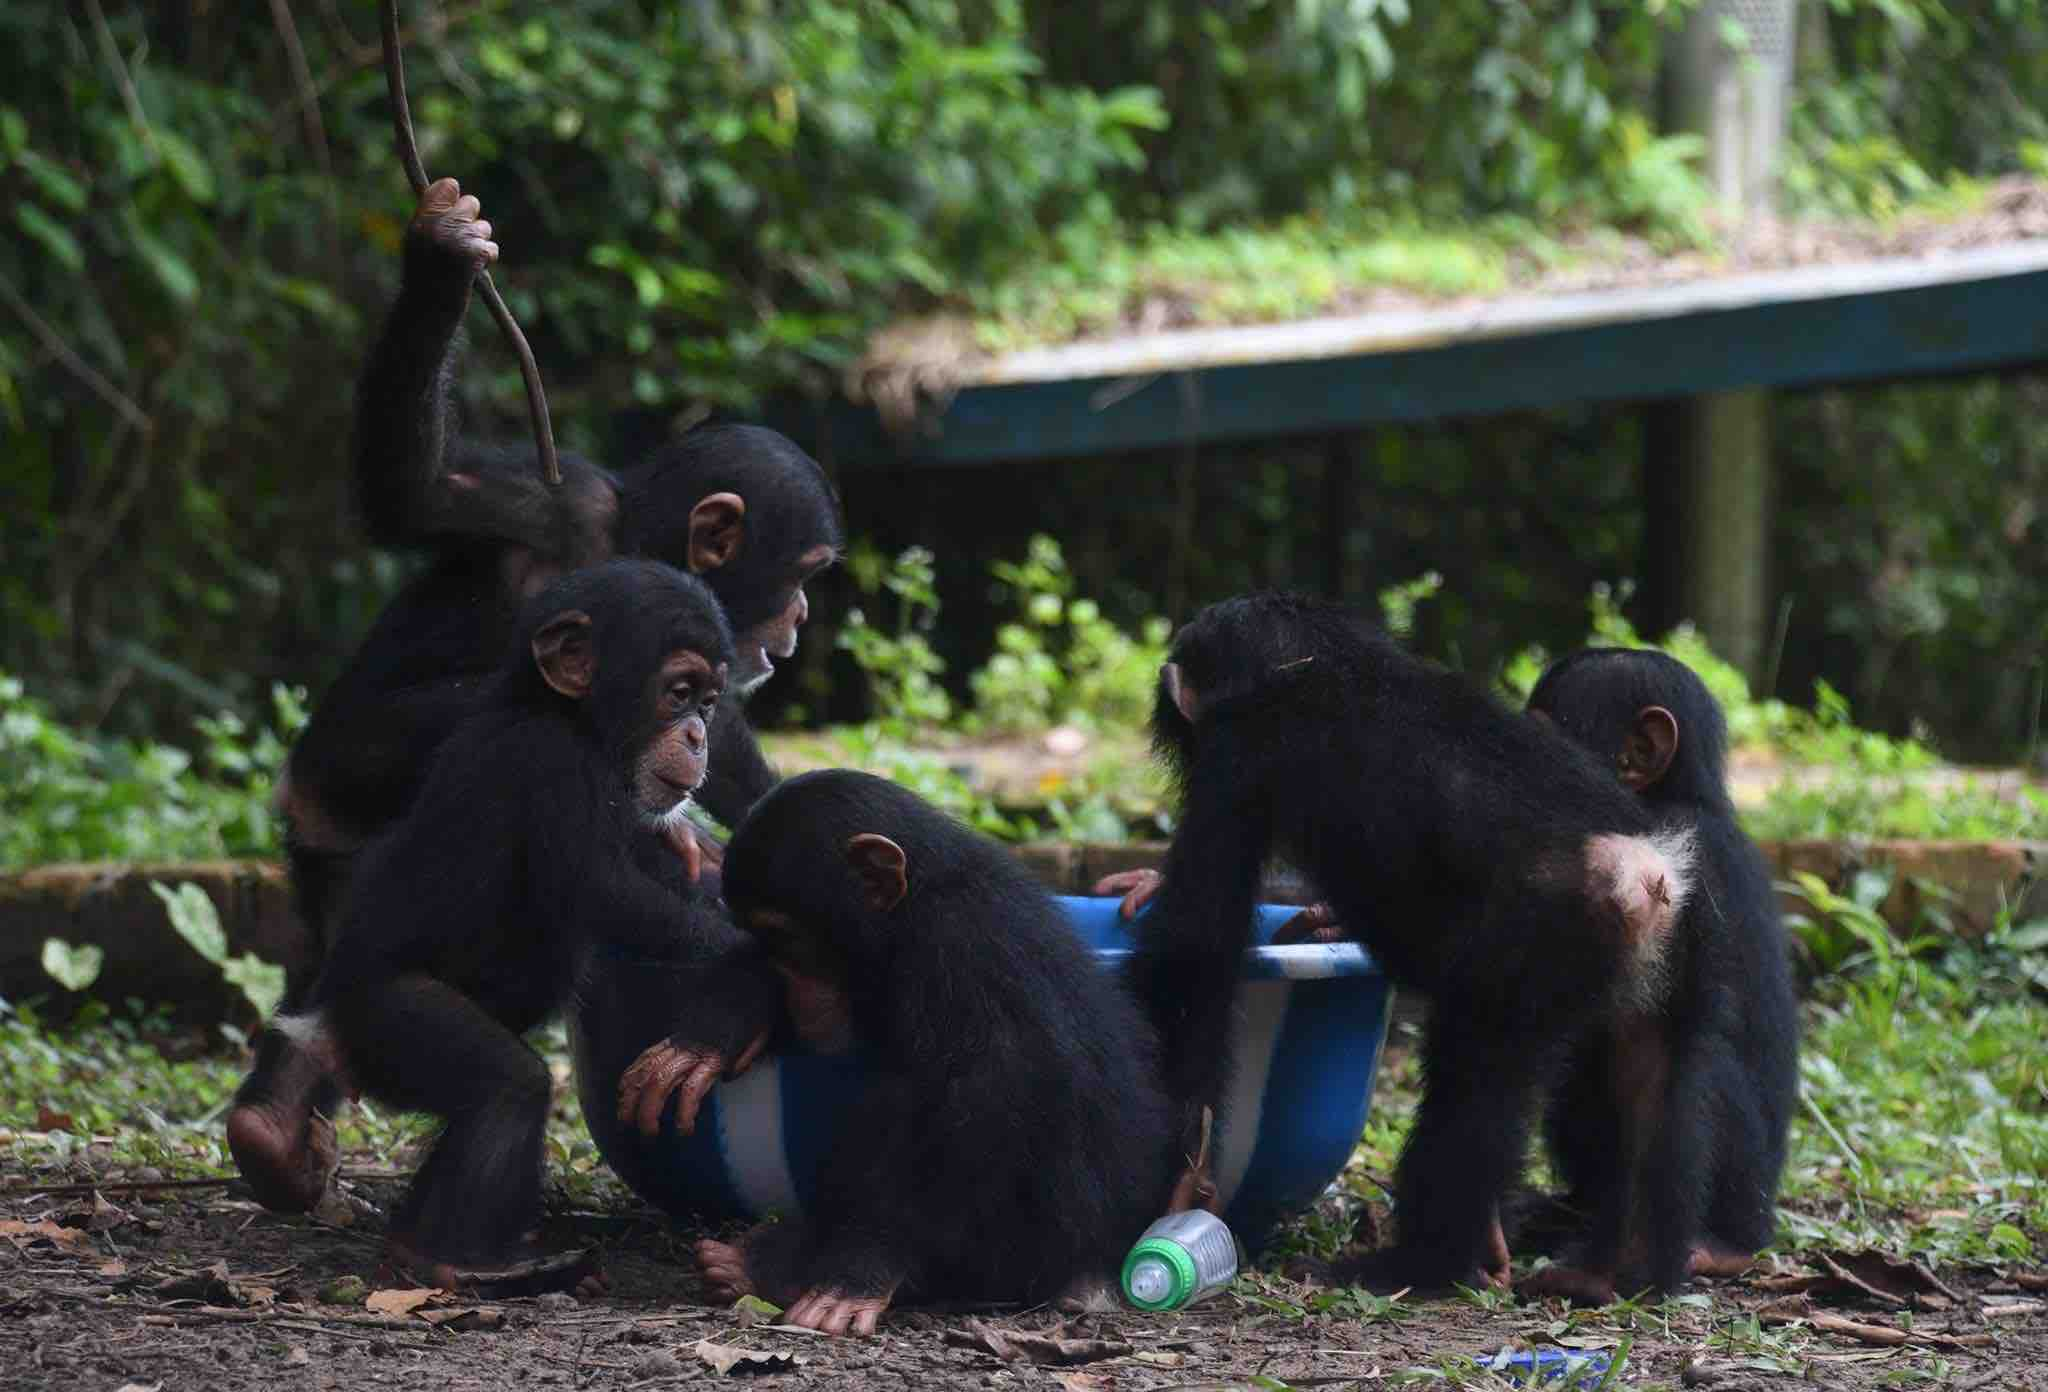 Racing Against Time to Build a Sanctuary for 19 Chimpanzees